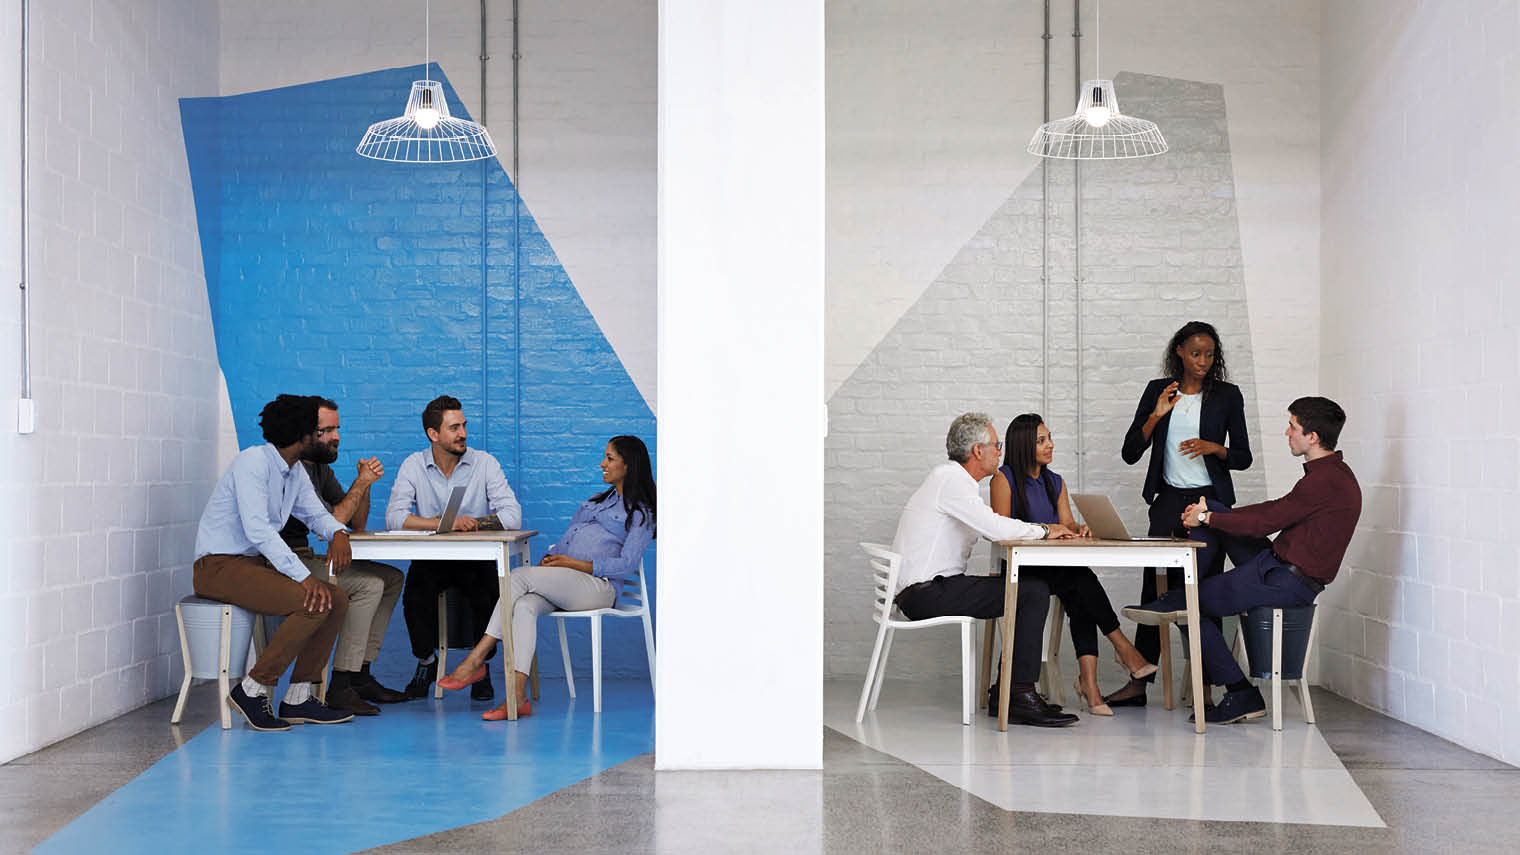 Two groups of employees sitting down